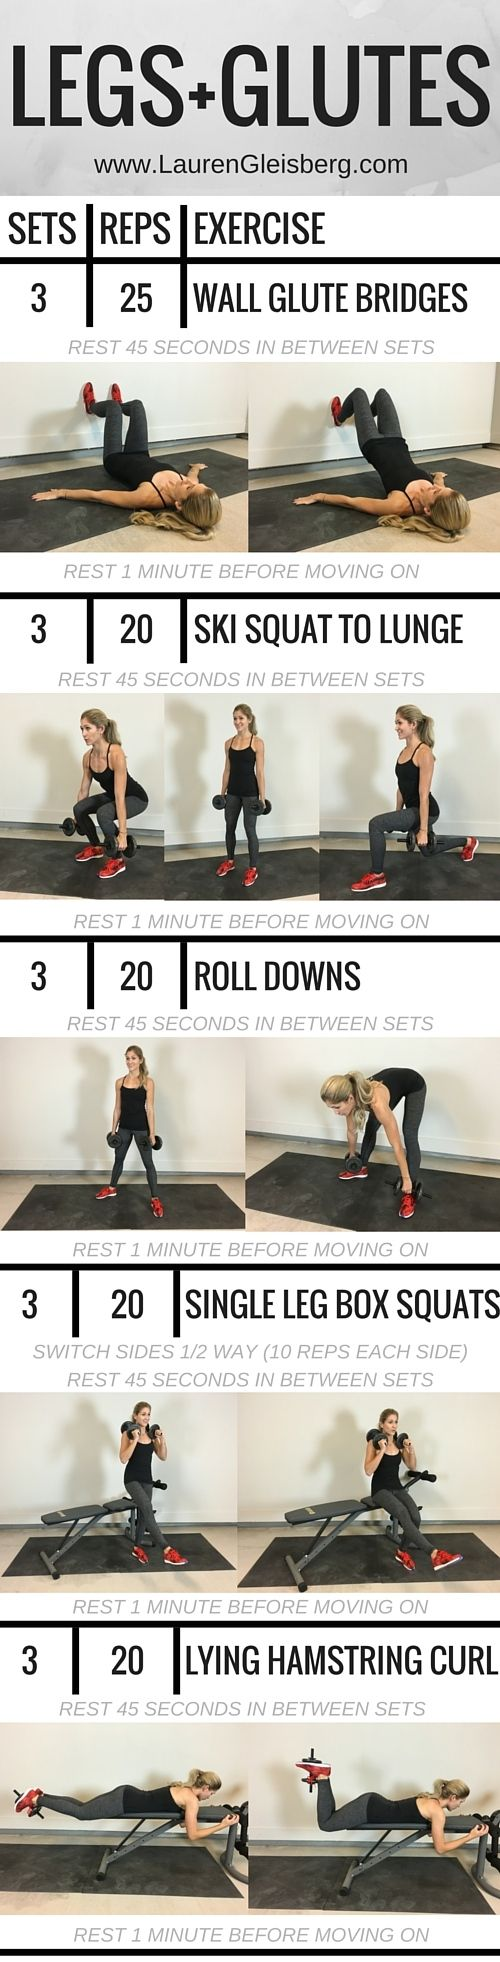 #LGFitAndLean2016 Fitness Challenge - Legs and Glutes Weight Training Workout  LaurenGleisberg.com